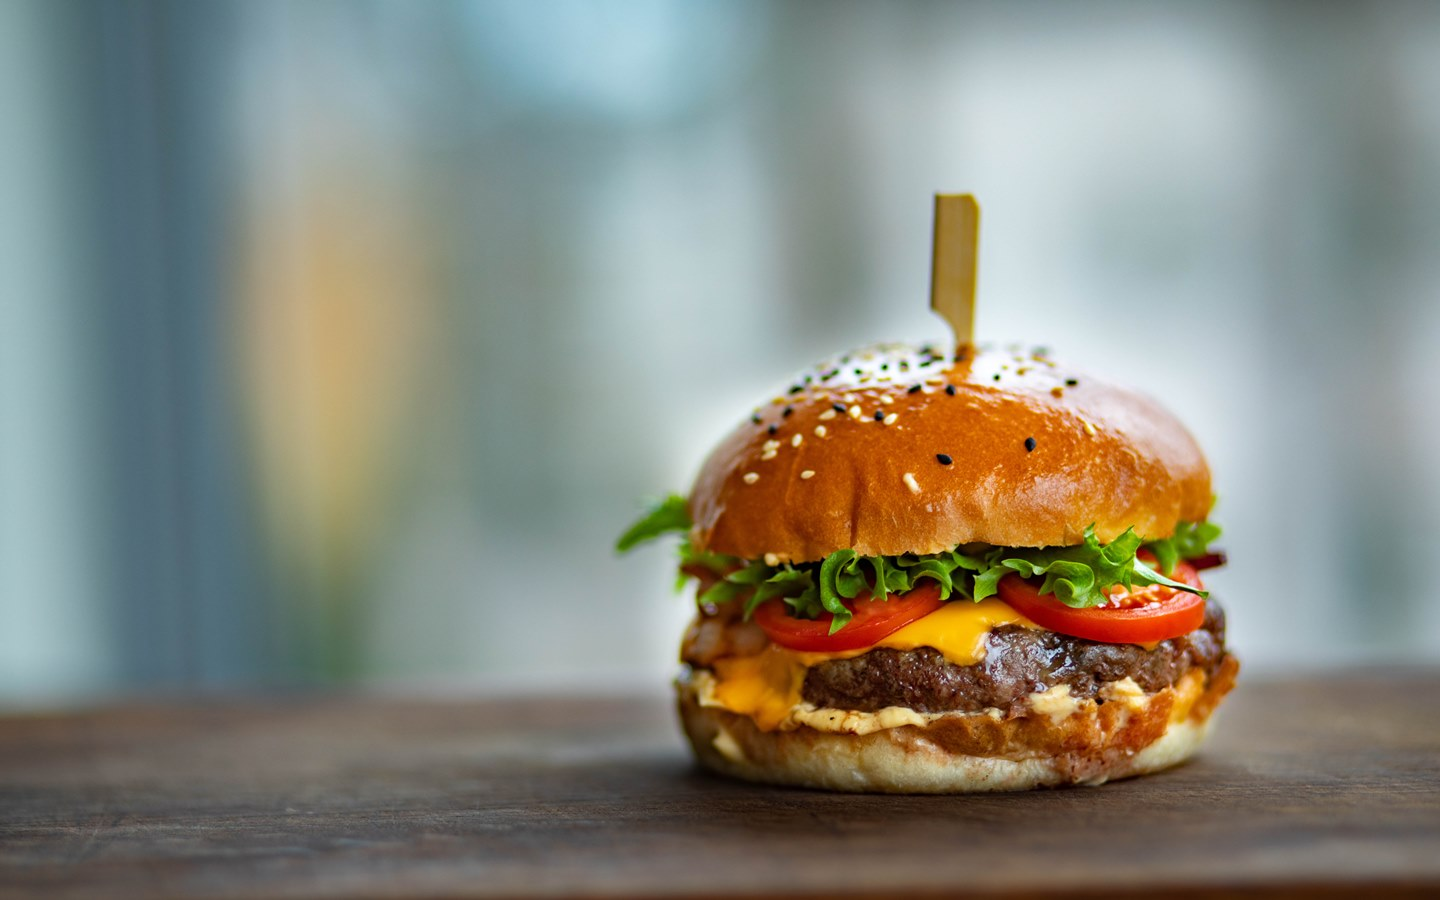 Taste some juicy burgers at the festival